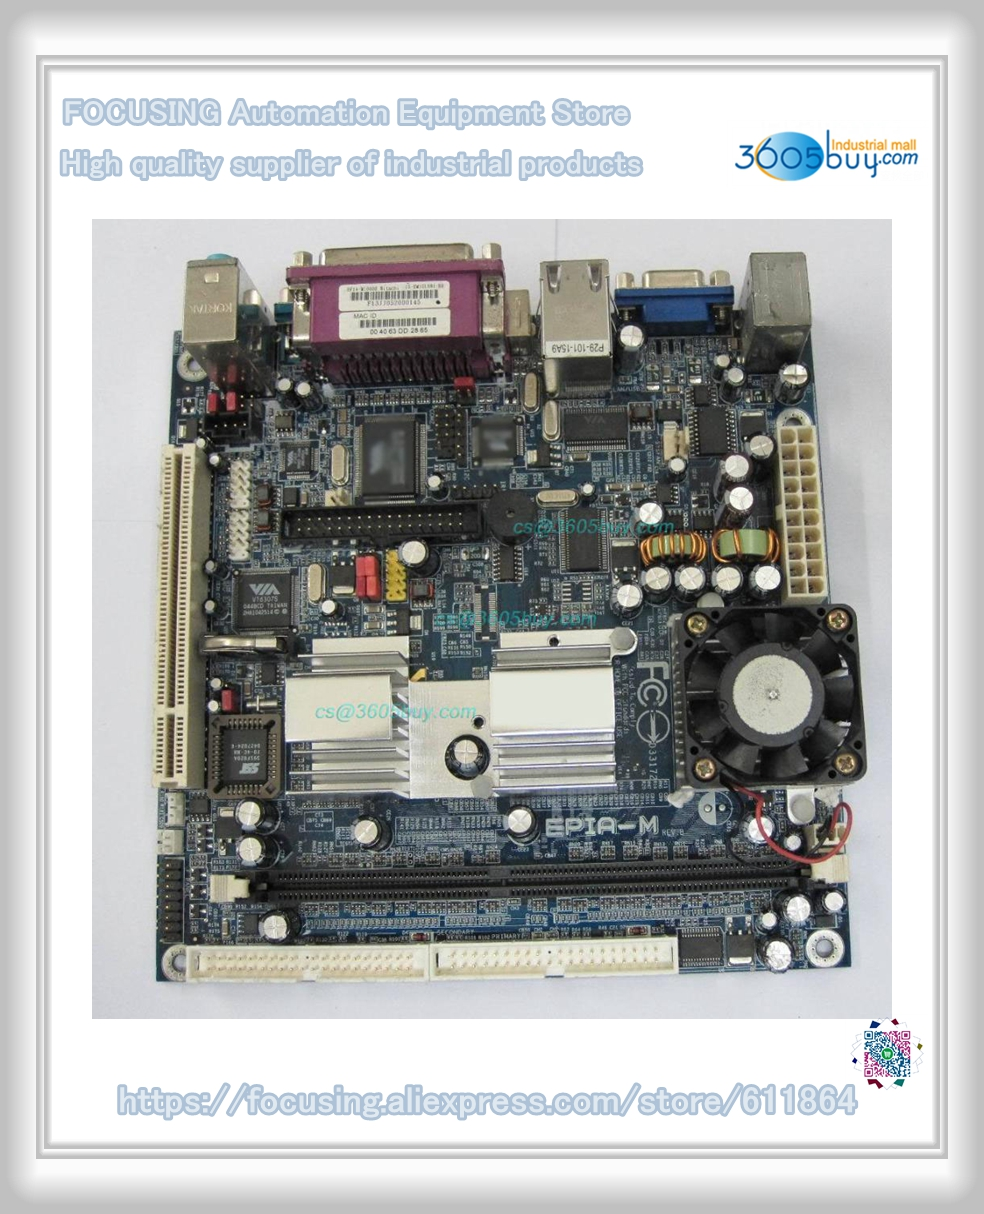 High quality EPIA-M10000G Embedded Mini-ITX Mainboard control mini 17*17CM board 90 days warrantry epia ml8000ag epia ml embedded industrial motherboard 100% tested perfect quality